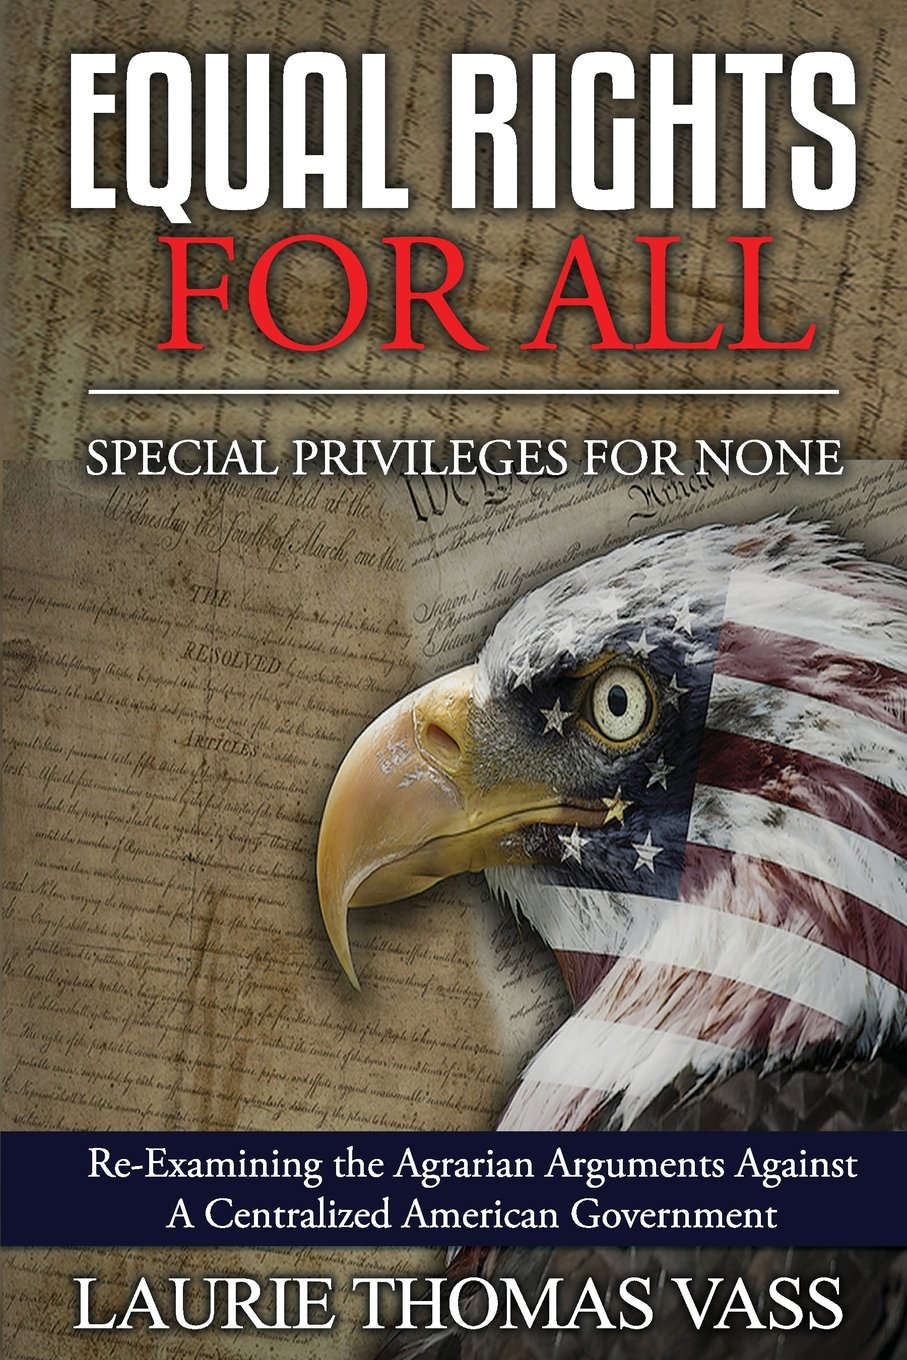 Read Online Equal Rights For All. Special Privileges For None.: Re-Examining the Agrarian Arguments Against A Centralized American Government ebook